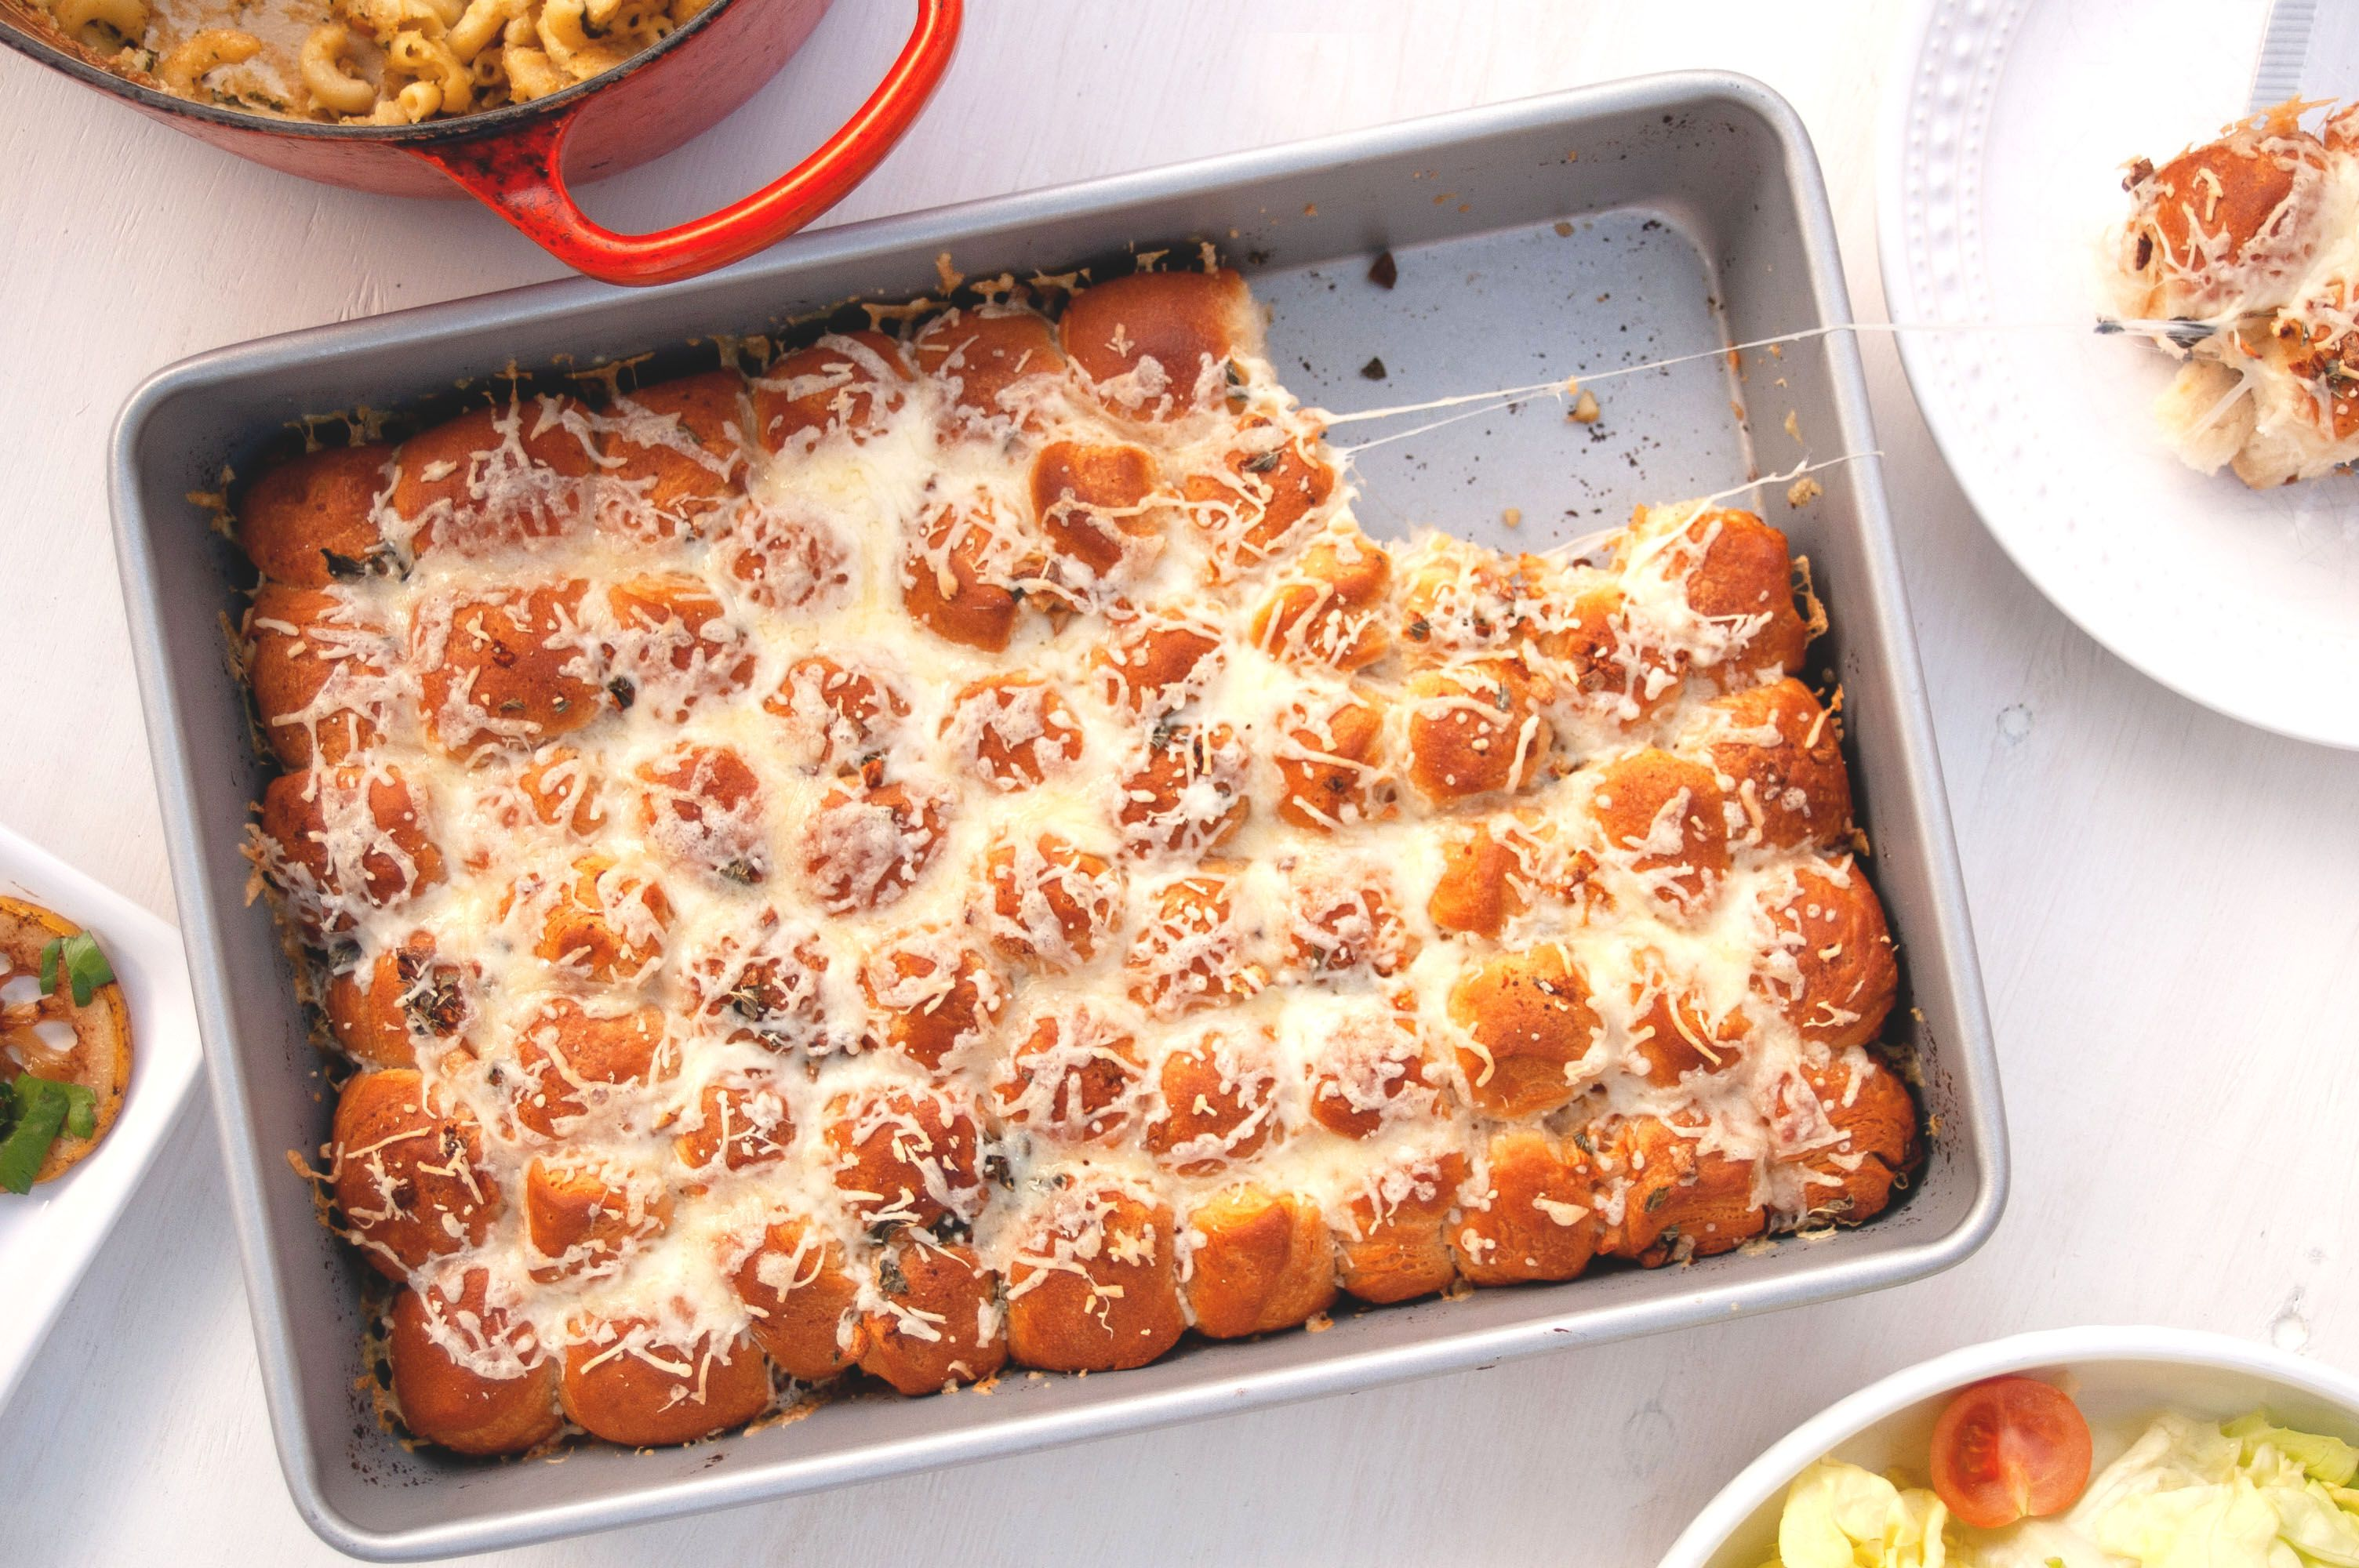 Cheesy Garlicky Bubble Bread Is Easy to Make and Fun to Share